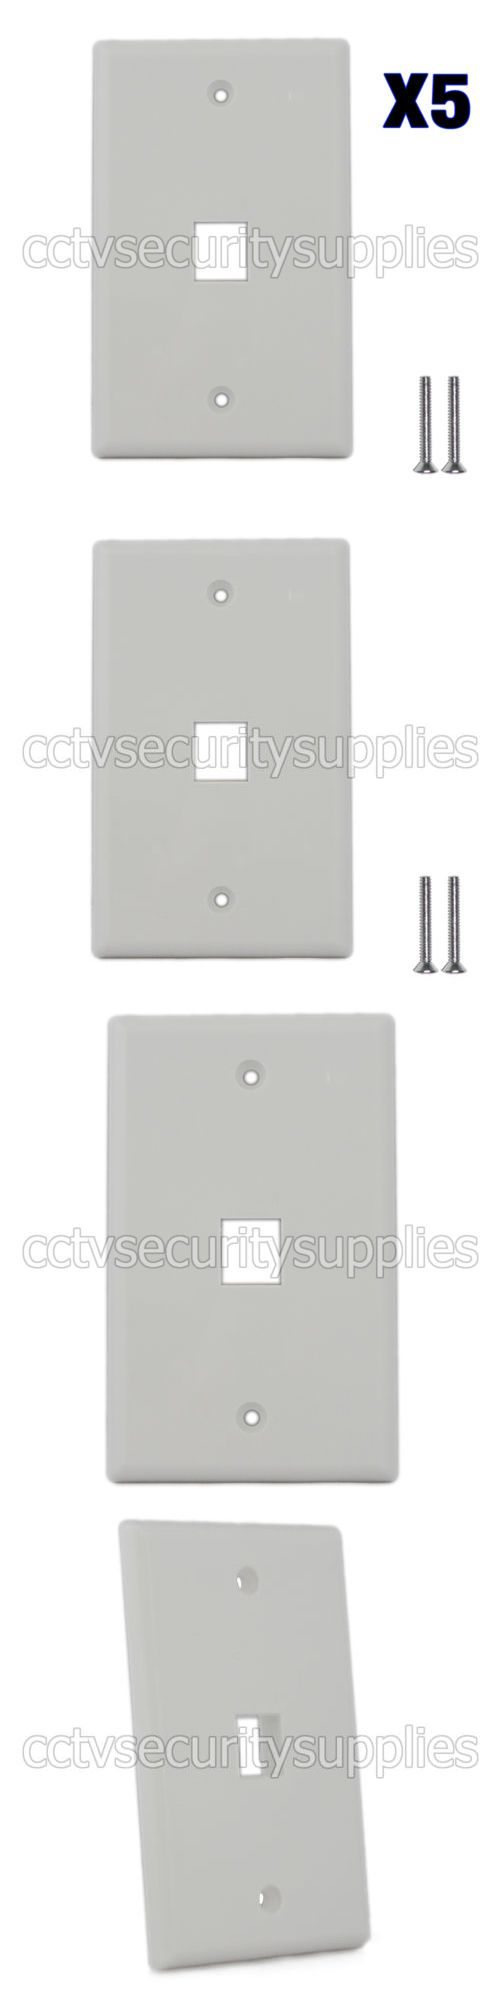 Switch Plates And Outlet Covers 162932 5 X Plastic Face Plate Cover 1 Port Wall Plate 1 Gang 2 Free Screws White Plates On Wall Plate Covers Switch Plates